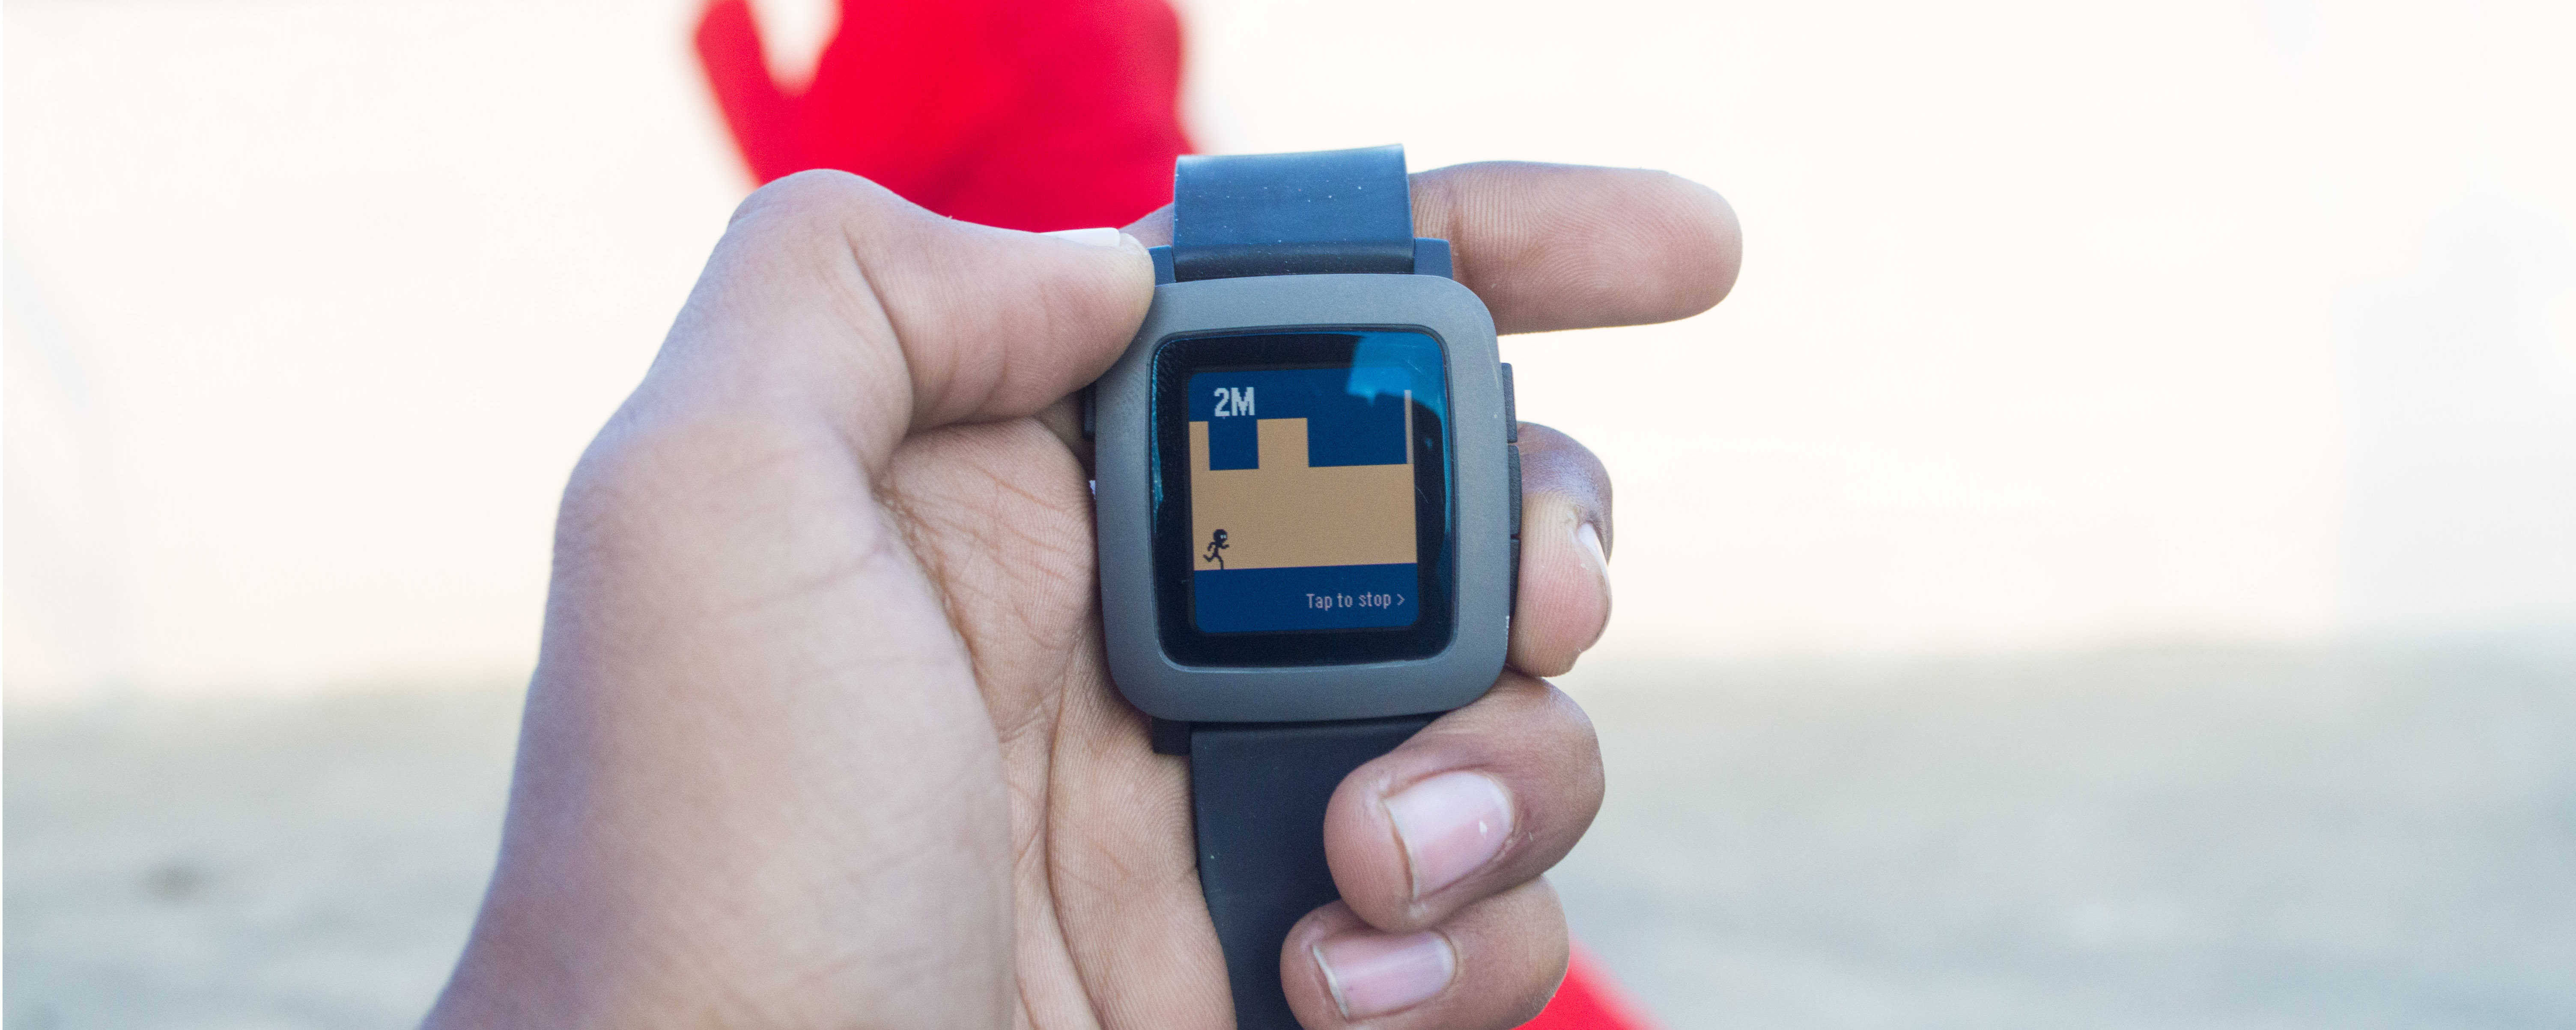 Best Games for Pebble Time - Mr Runner